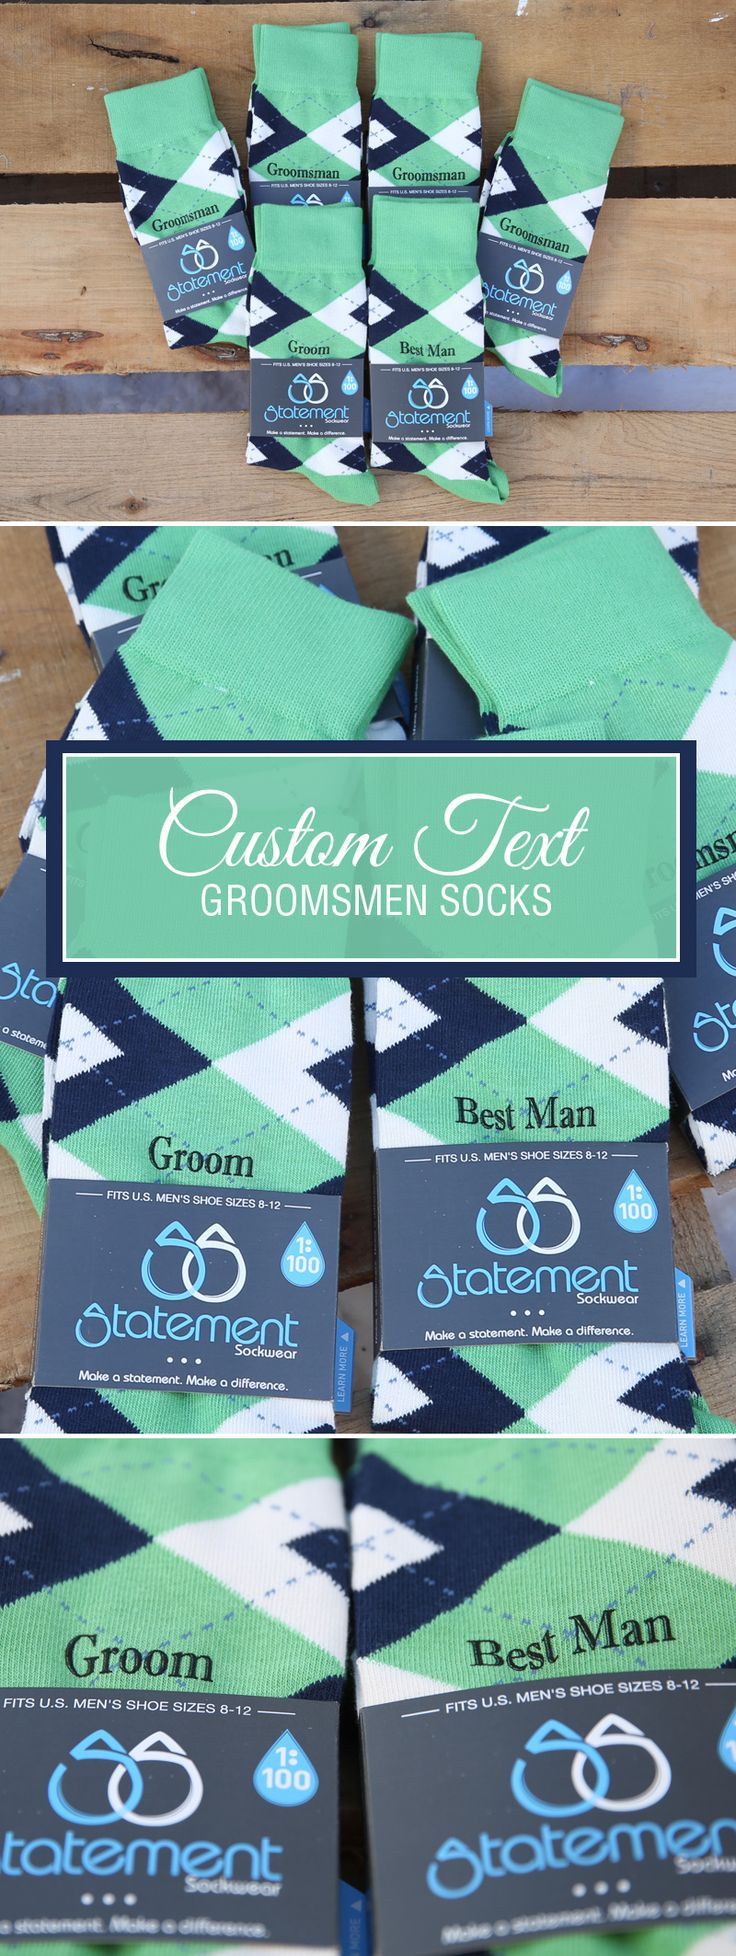 Looking for a way to customize your clover green and navy wedding? We customize our most popular wedding colors with wedding dates, wedding text and monograms. Give your groomsmen in your wedding a gift they will never forget that will always remind them of your big wedding day: custom clover green navy groomsmen socks.